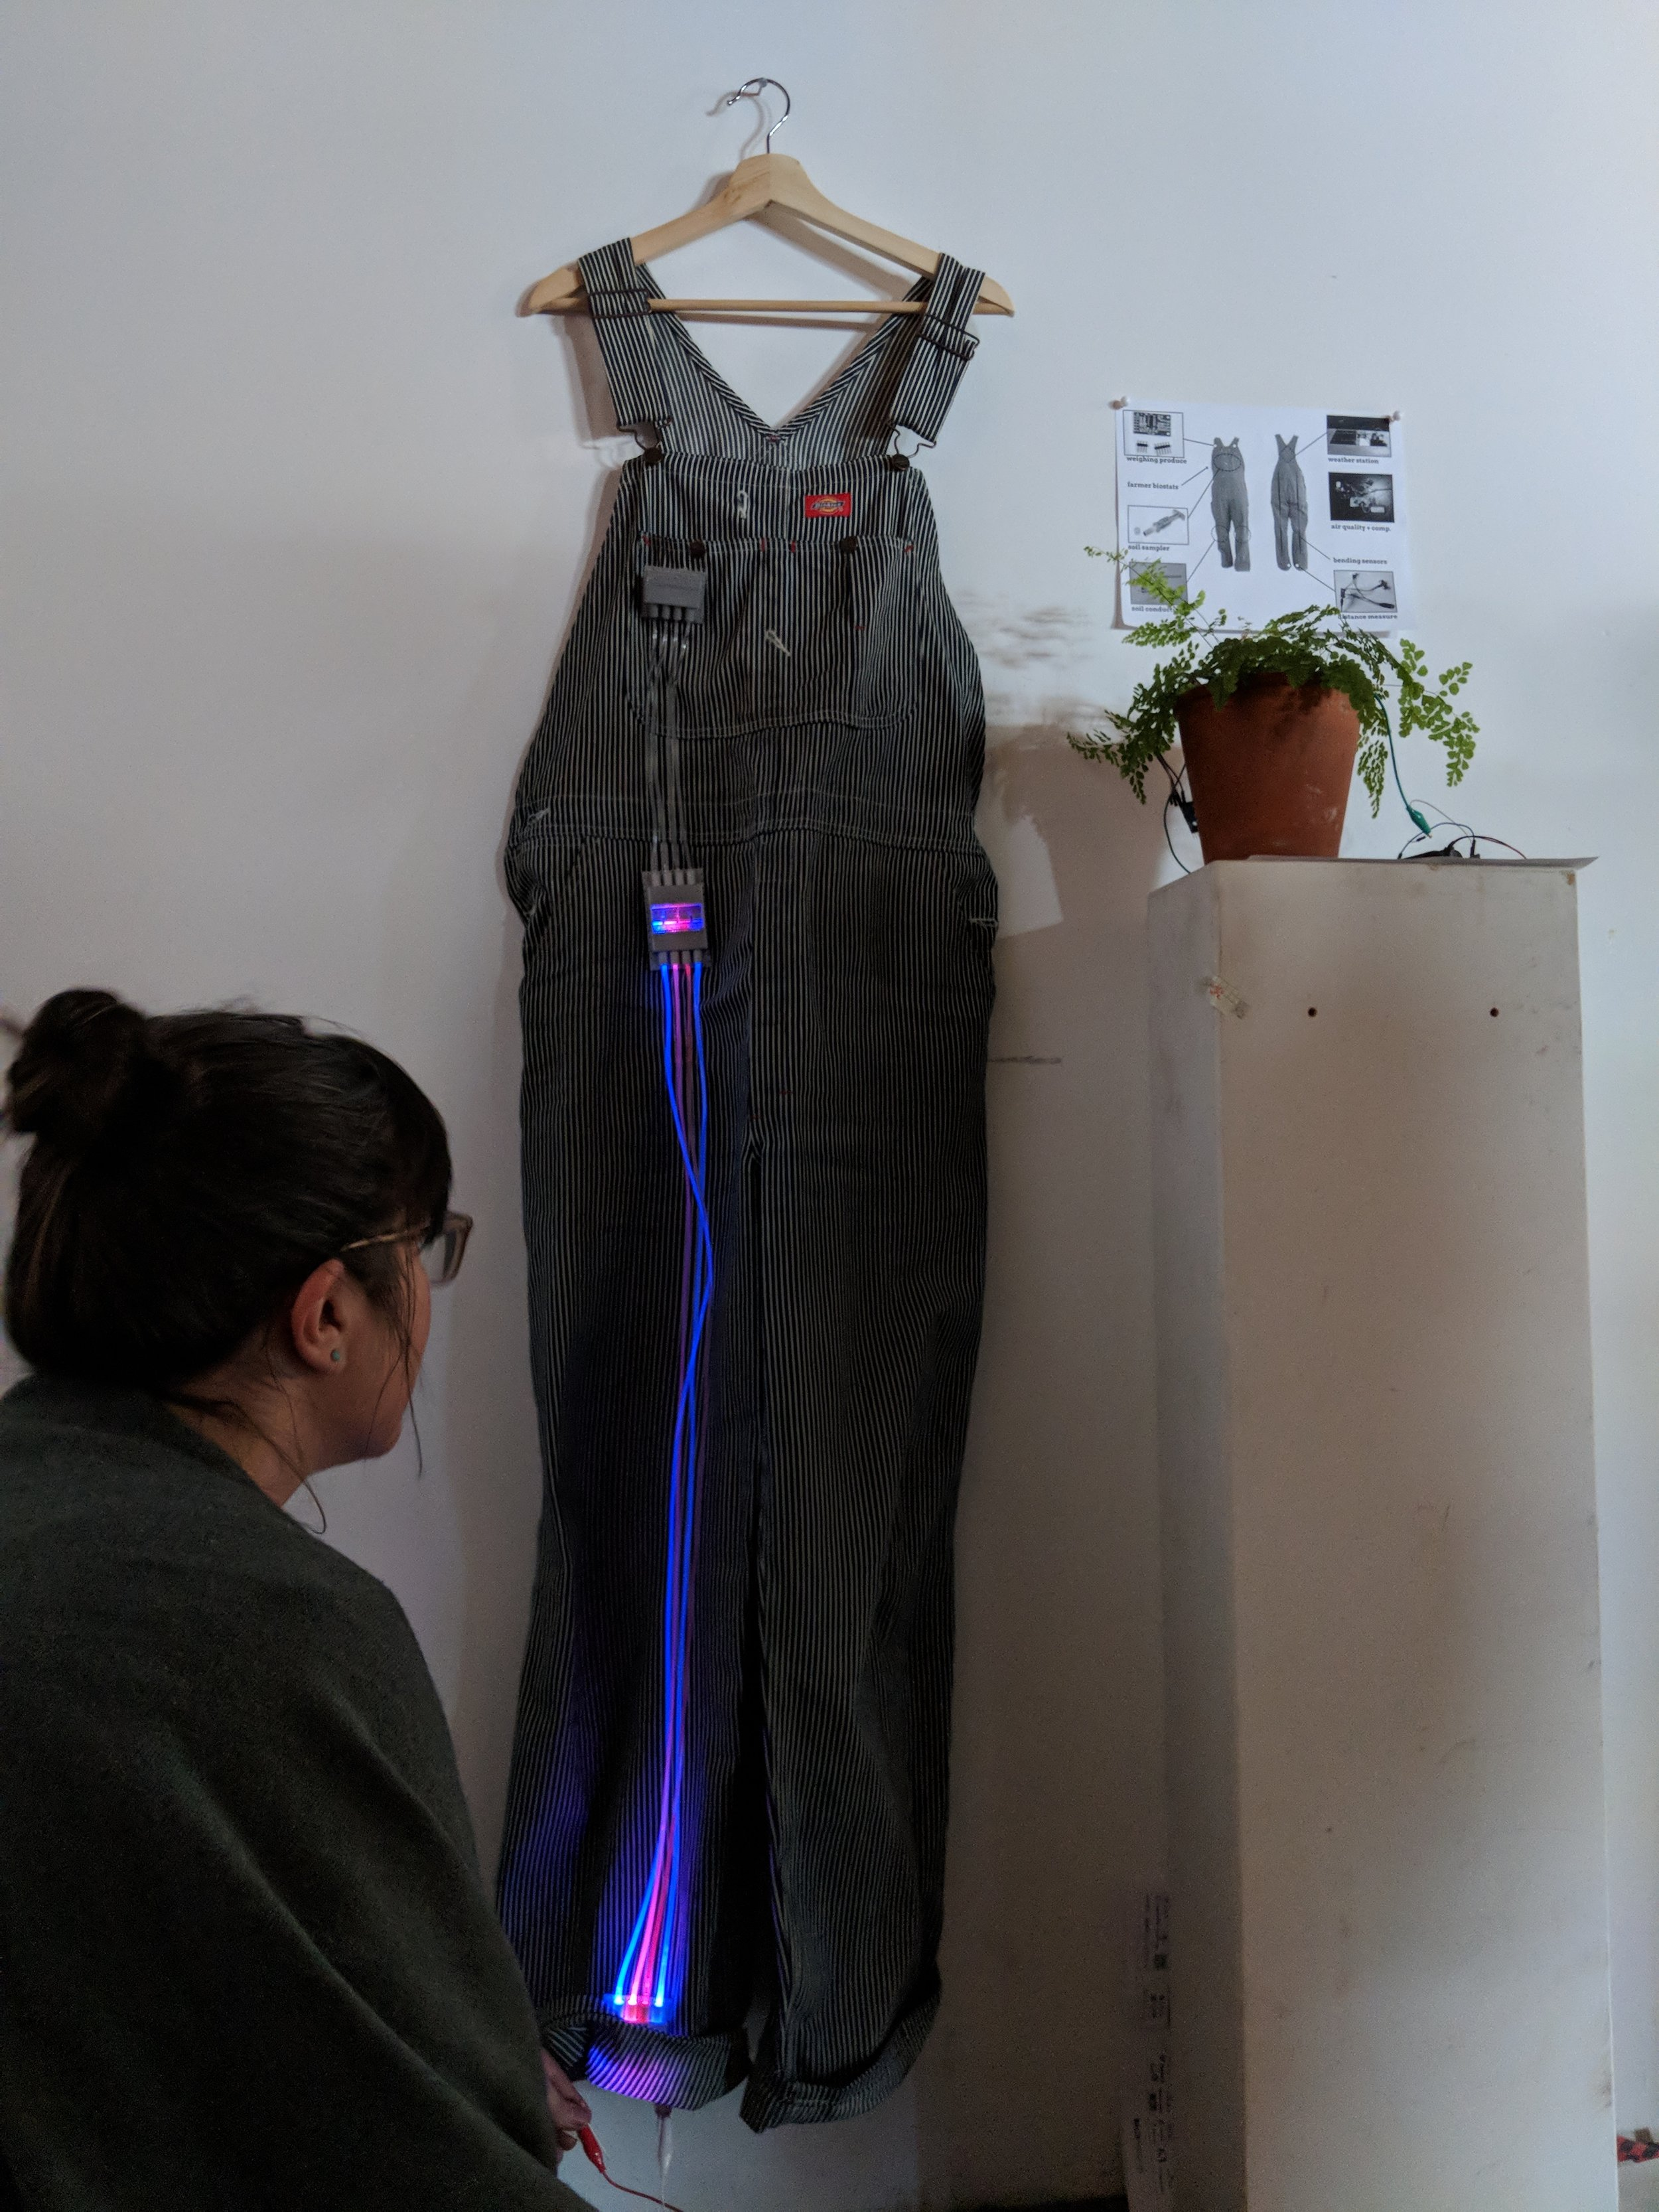 This wearable overall for farmers is intended to light up using a humidity sensor, when the farmer gets in contact with the wet soil.